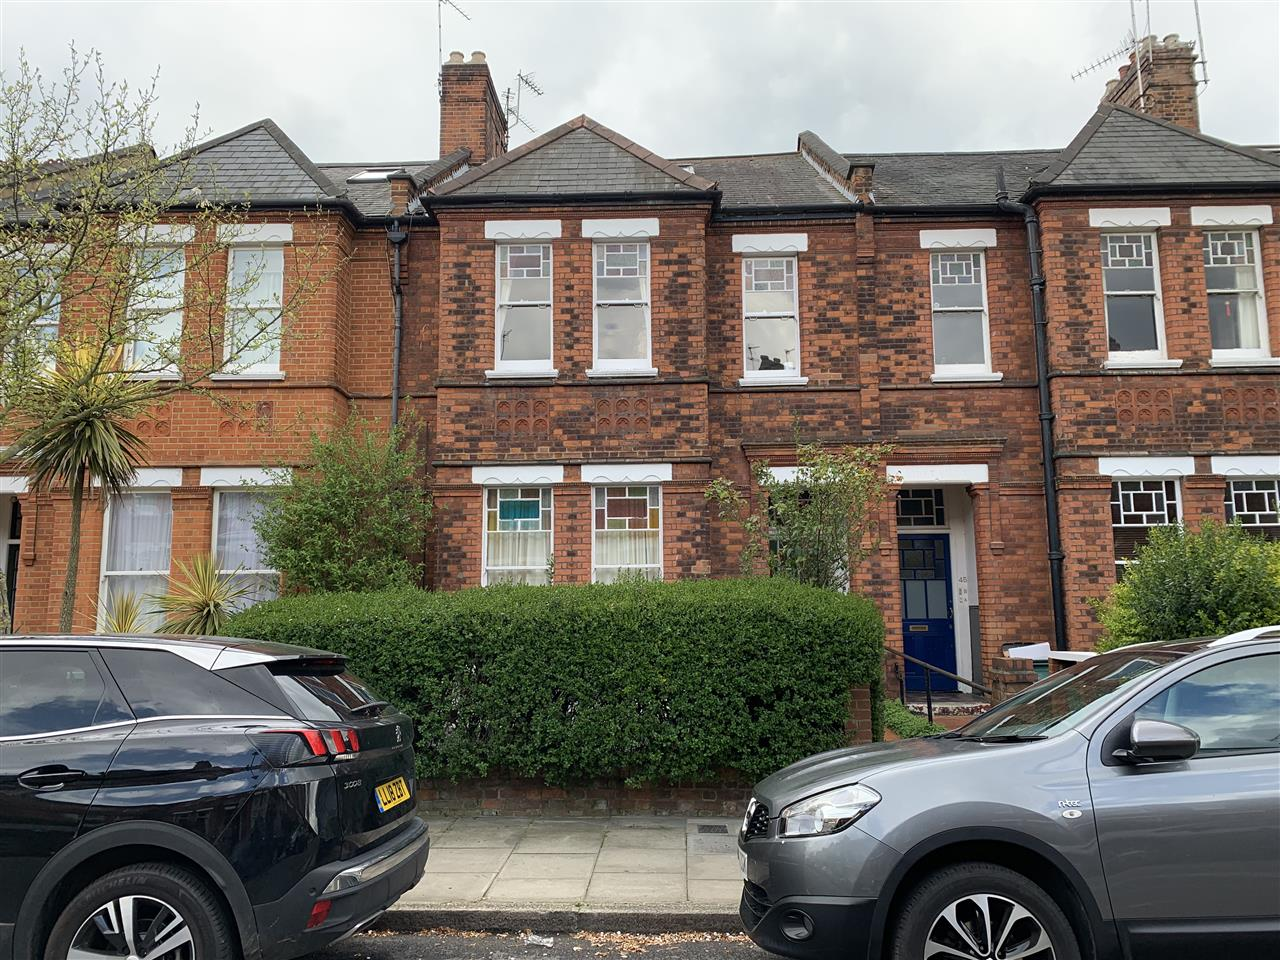 3 bed flat to rent in Tytherton Road, London, N19